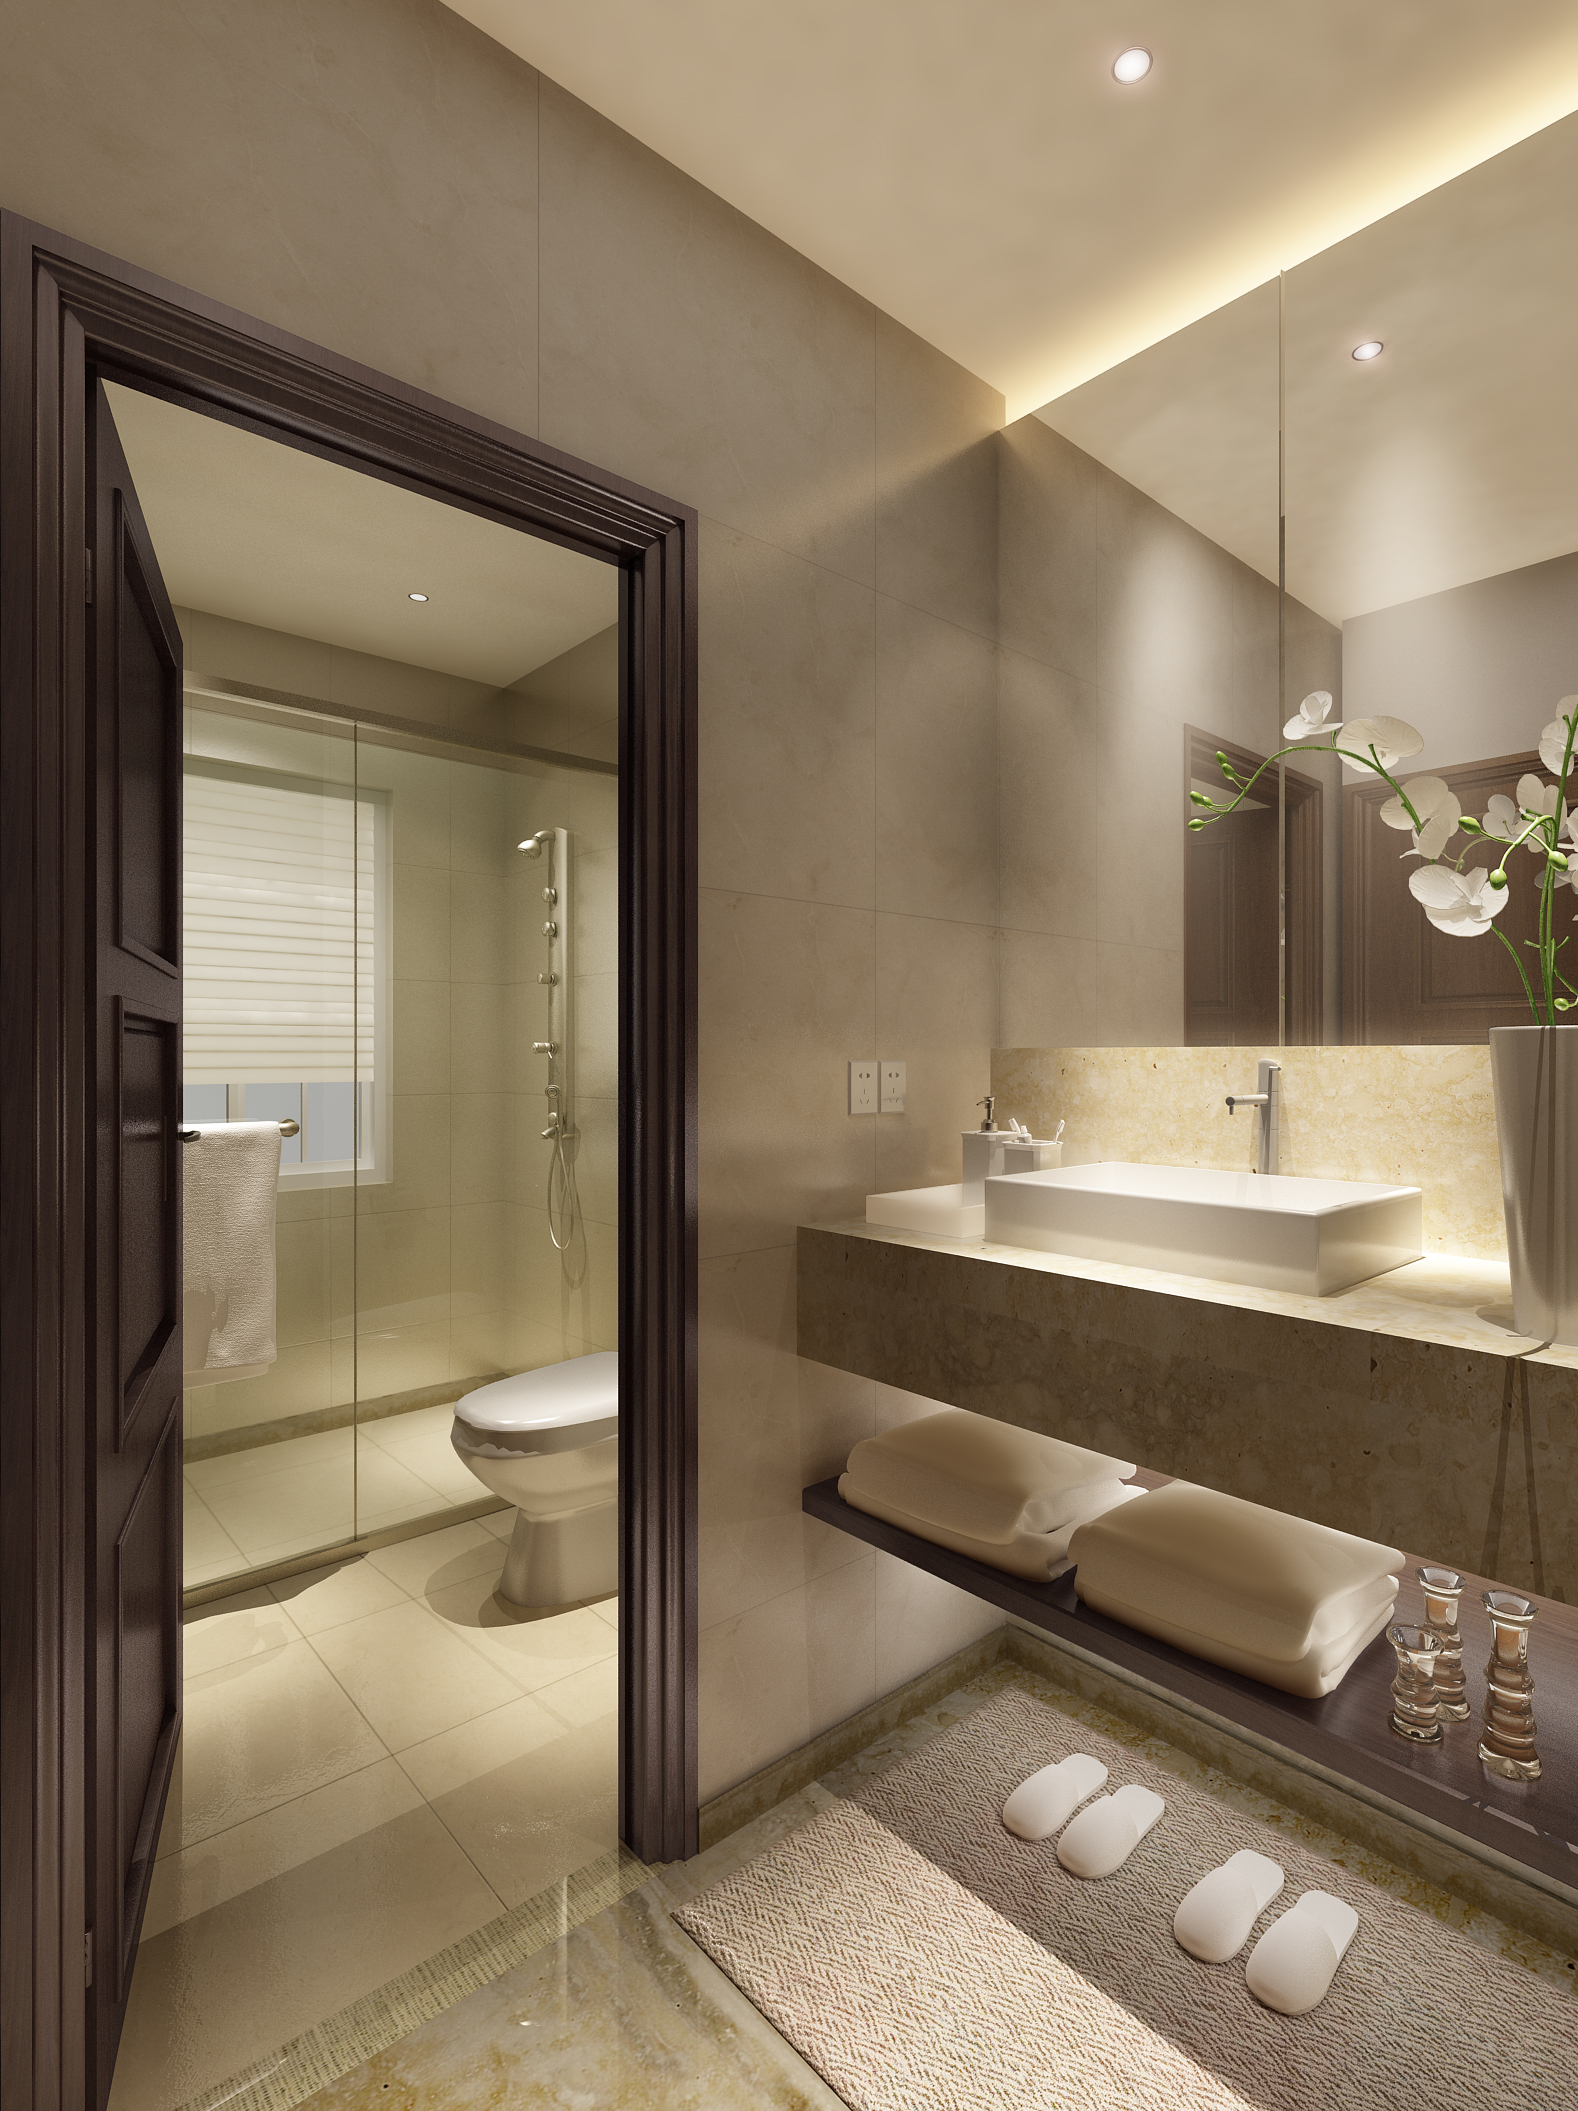 Luxurious bathroom with marble floor 3d model max for Bathroom models images